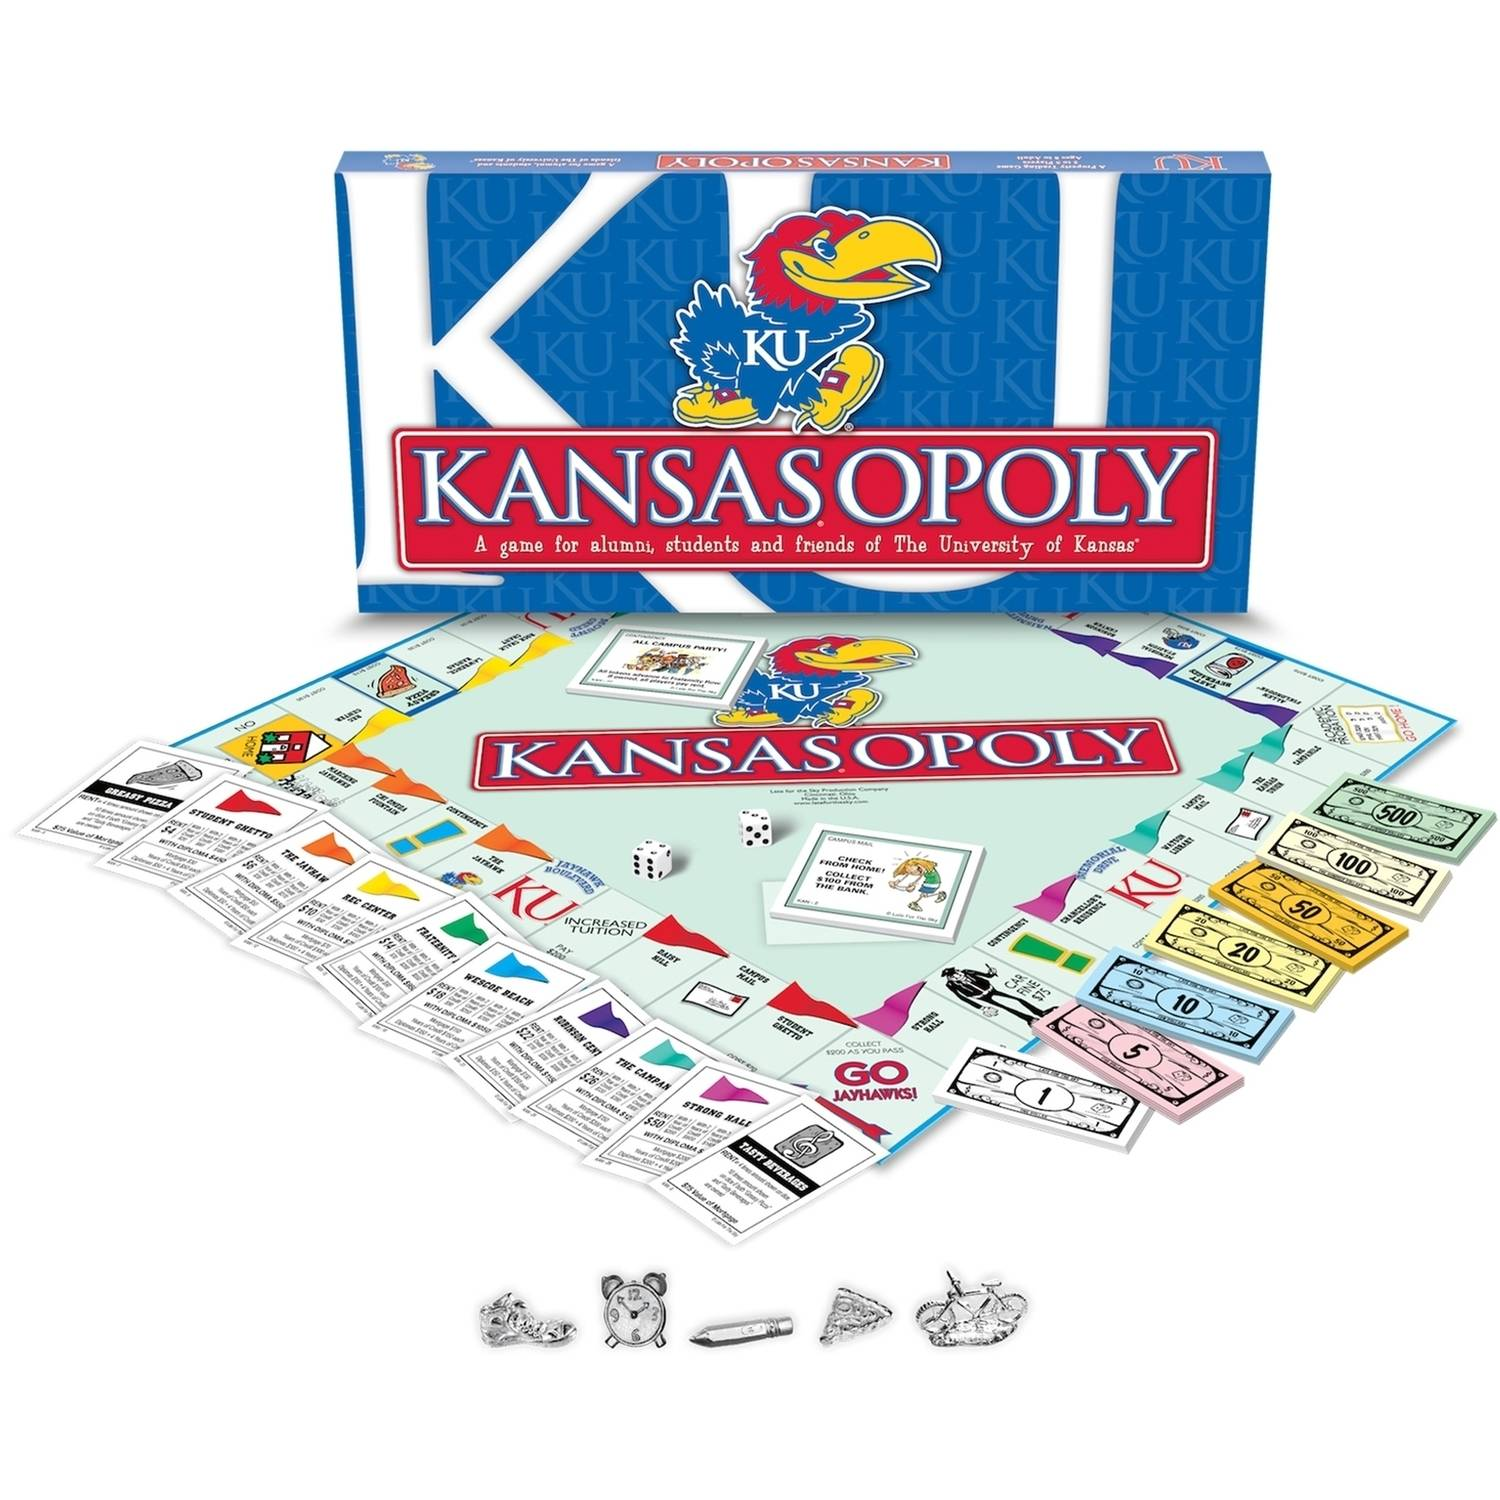 University of Kansas - Kansasopoly Board Game